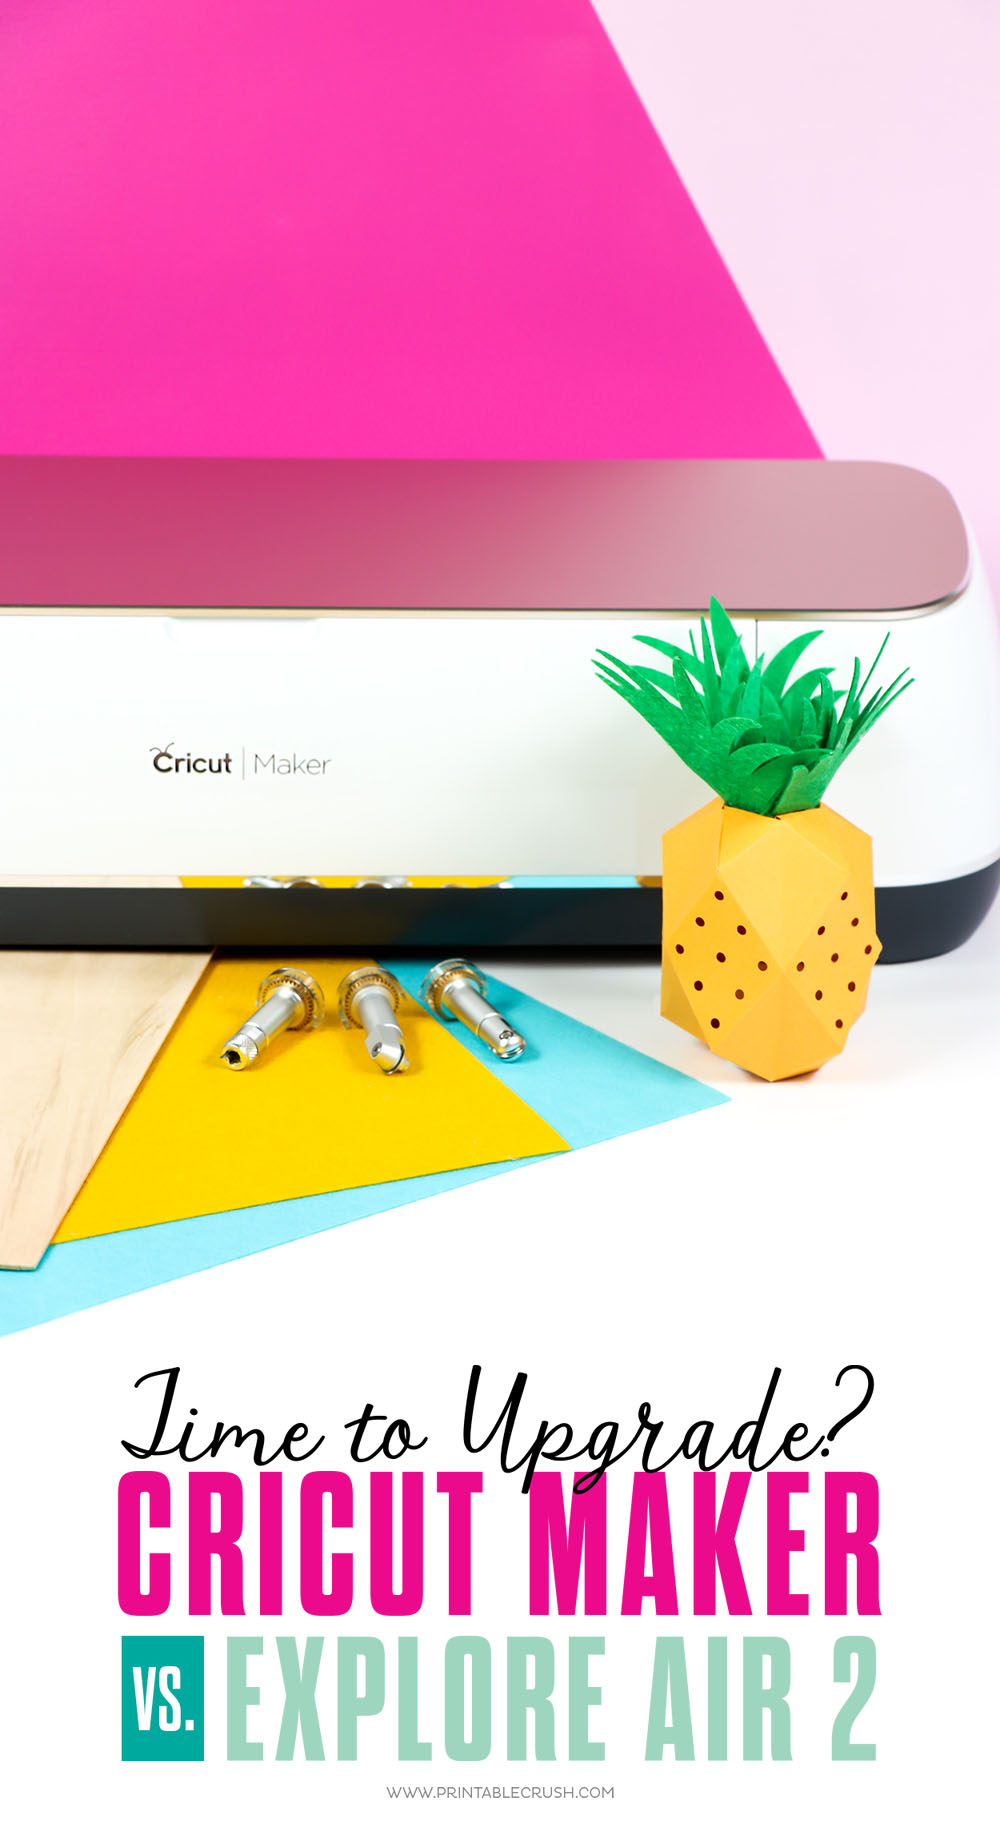 Looking to upgrade to the Cricut Maker from your Explore Air 2? Check out all the amazing features of the Cricut Maker!